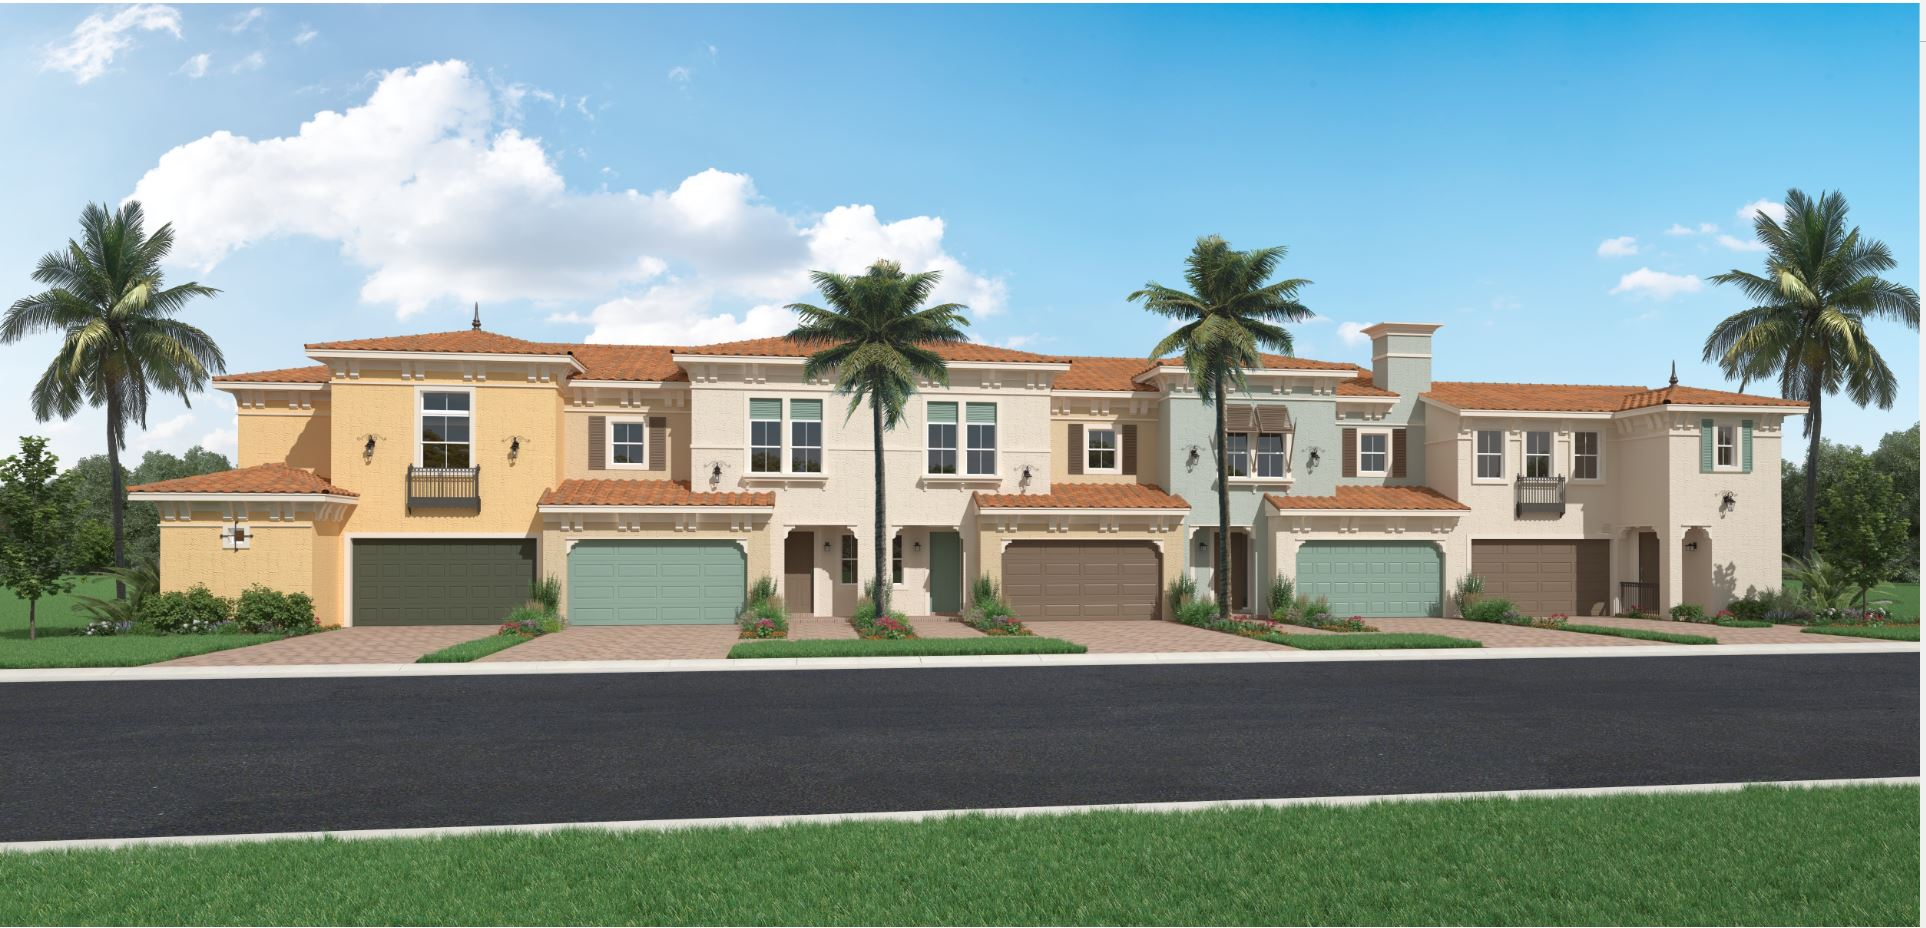 Mediterranean Elevation: Terrace Home Collection